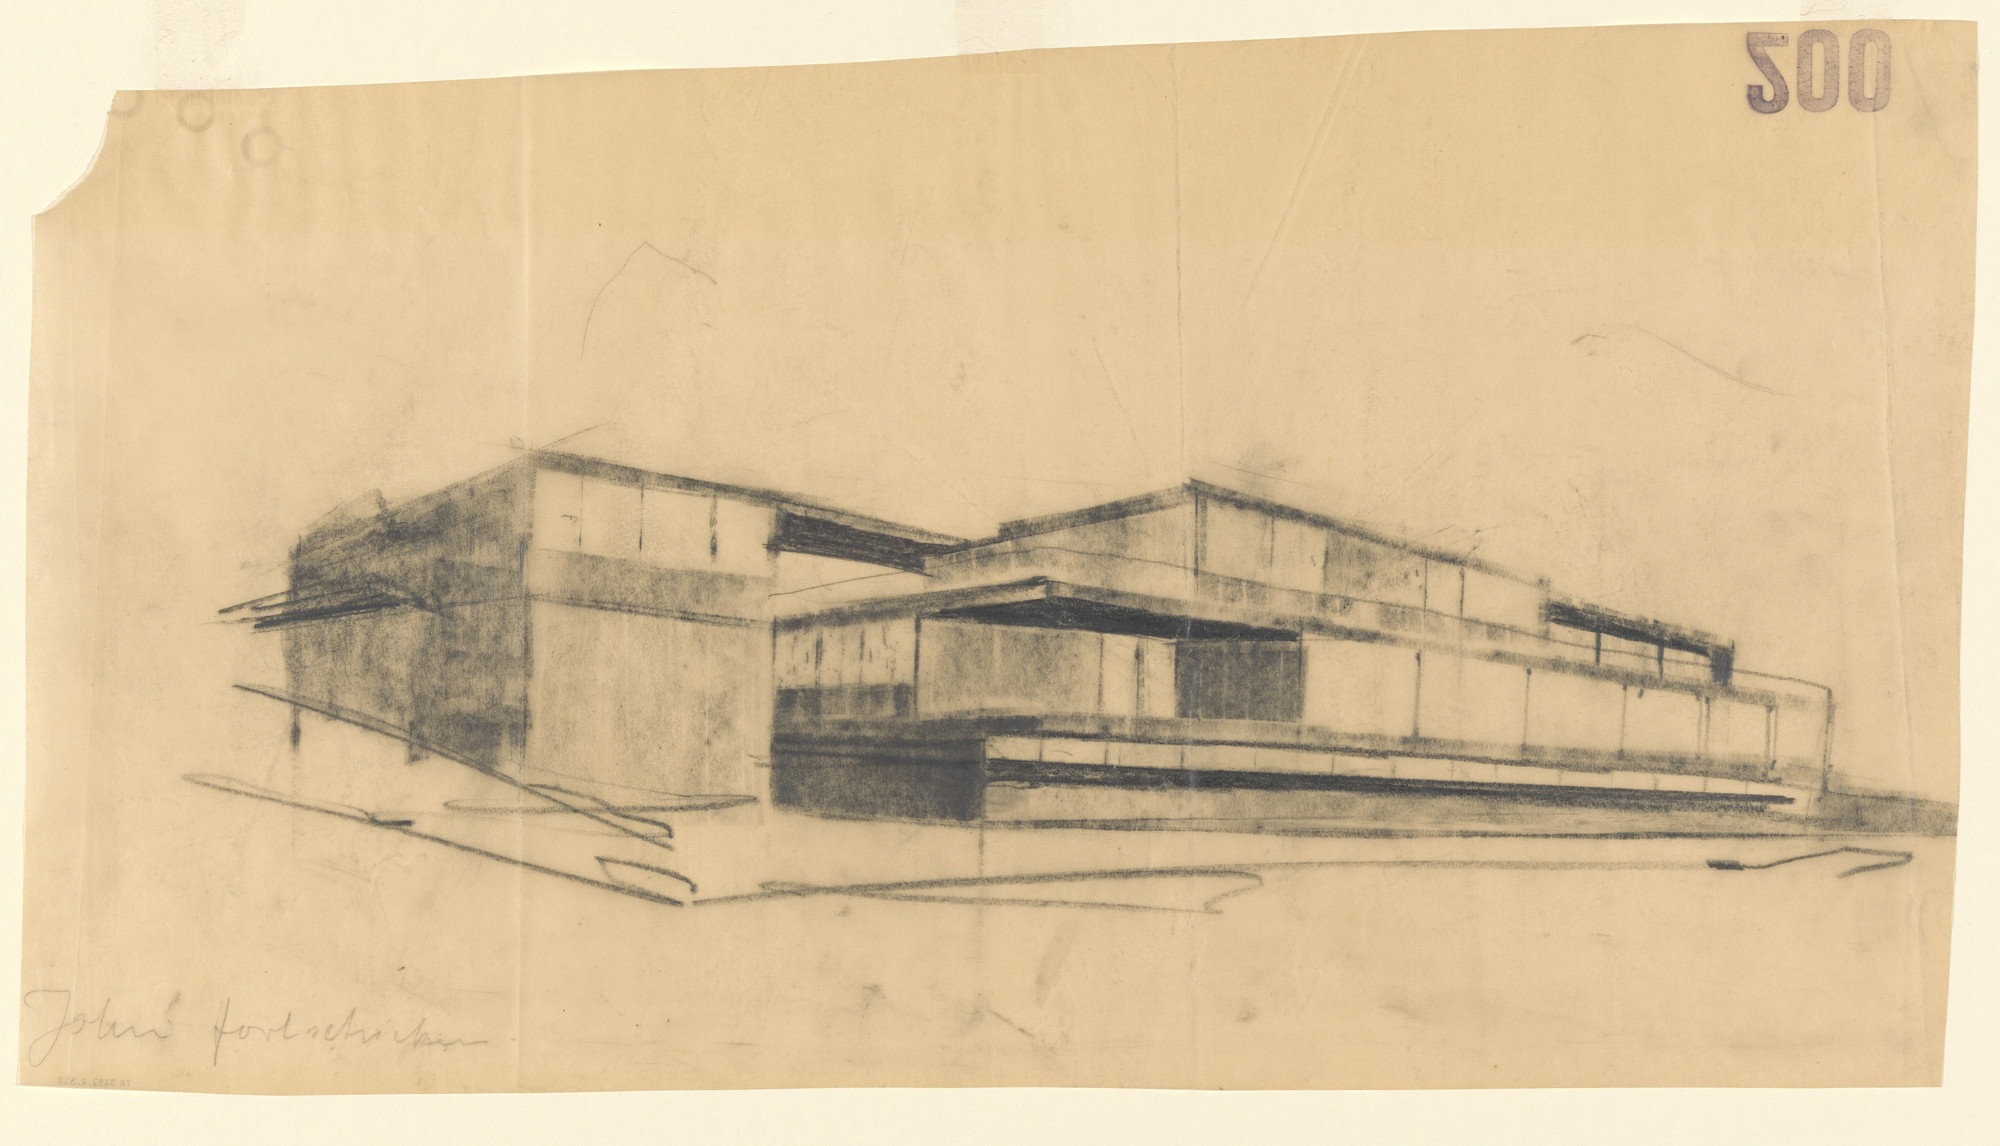 Ludwig Mies van der Rohe. Tugendhat House, Brno, Czech Republic (Perspective from southwest). 1928–1930